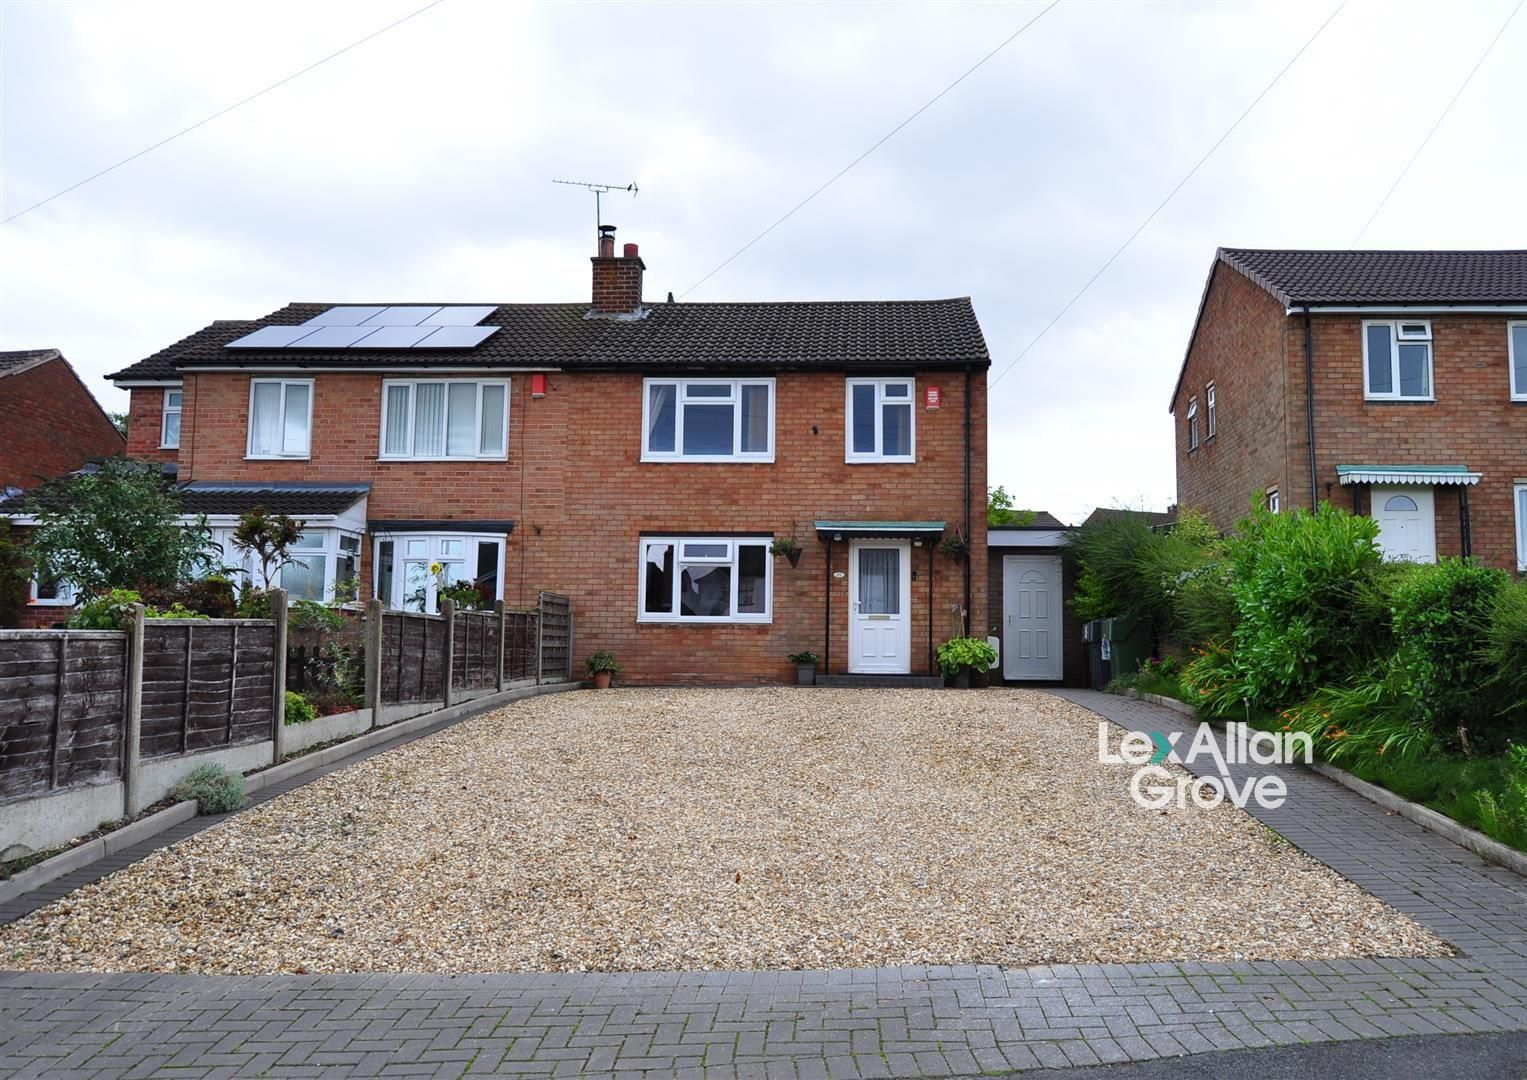 3 bed semi-detached for sale in Romsley  - Property Image 1